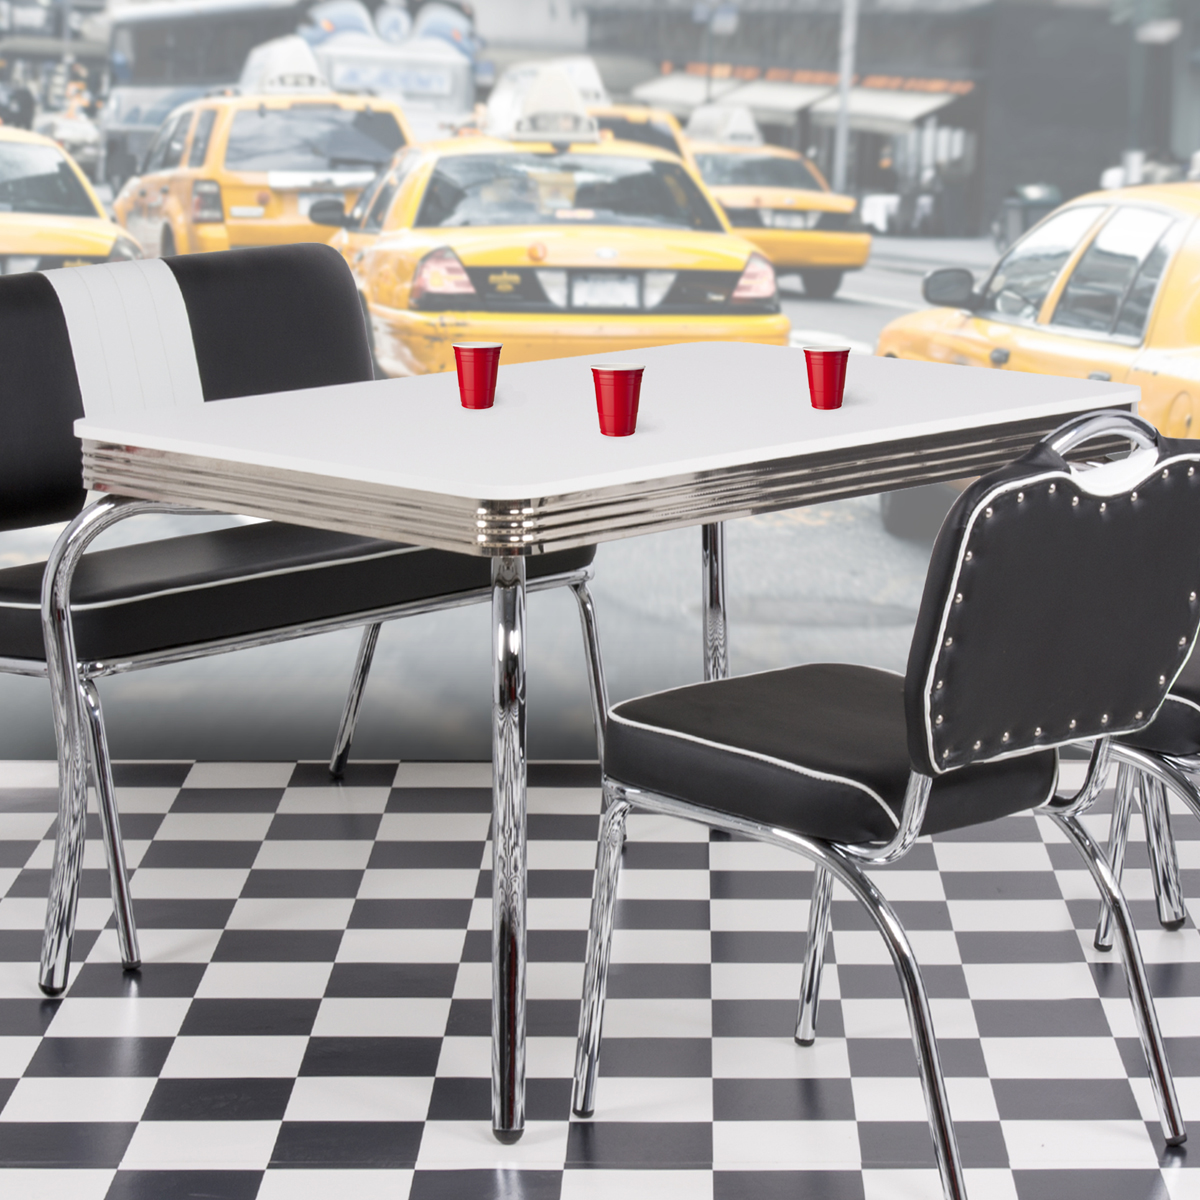 tisch elvis american diner bistro 50er jahre rockabilly retro verchromt 120x80cm ebay. Black Bedroom Furniture Sets. Home Design Ideas